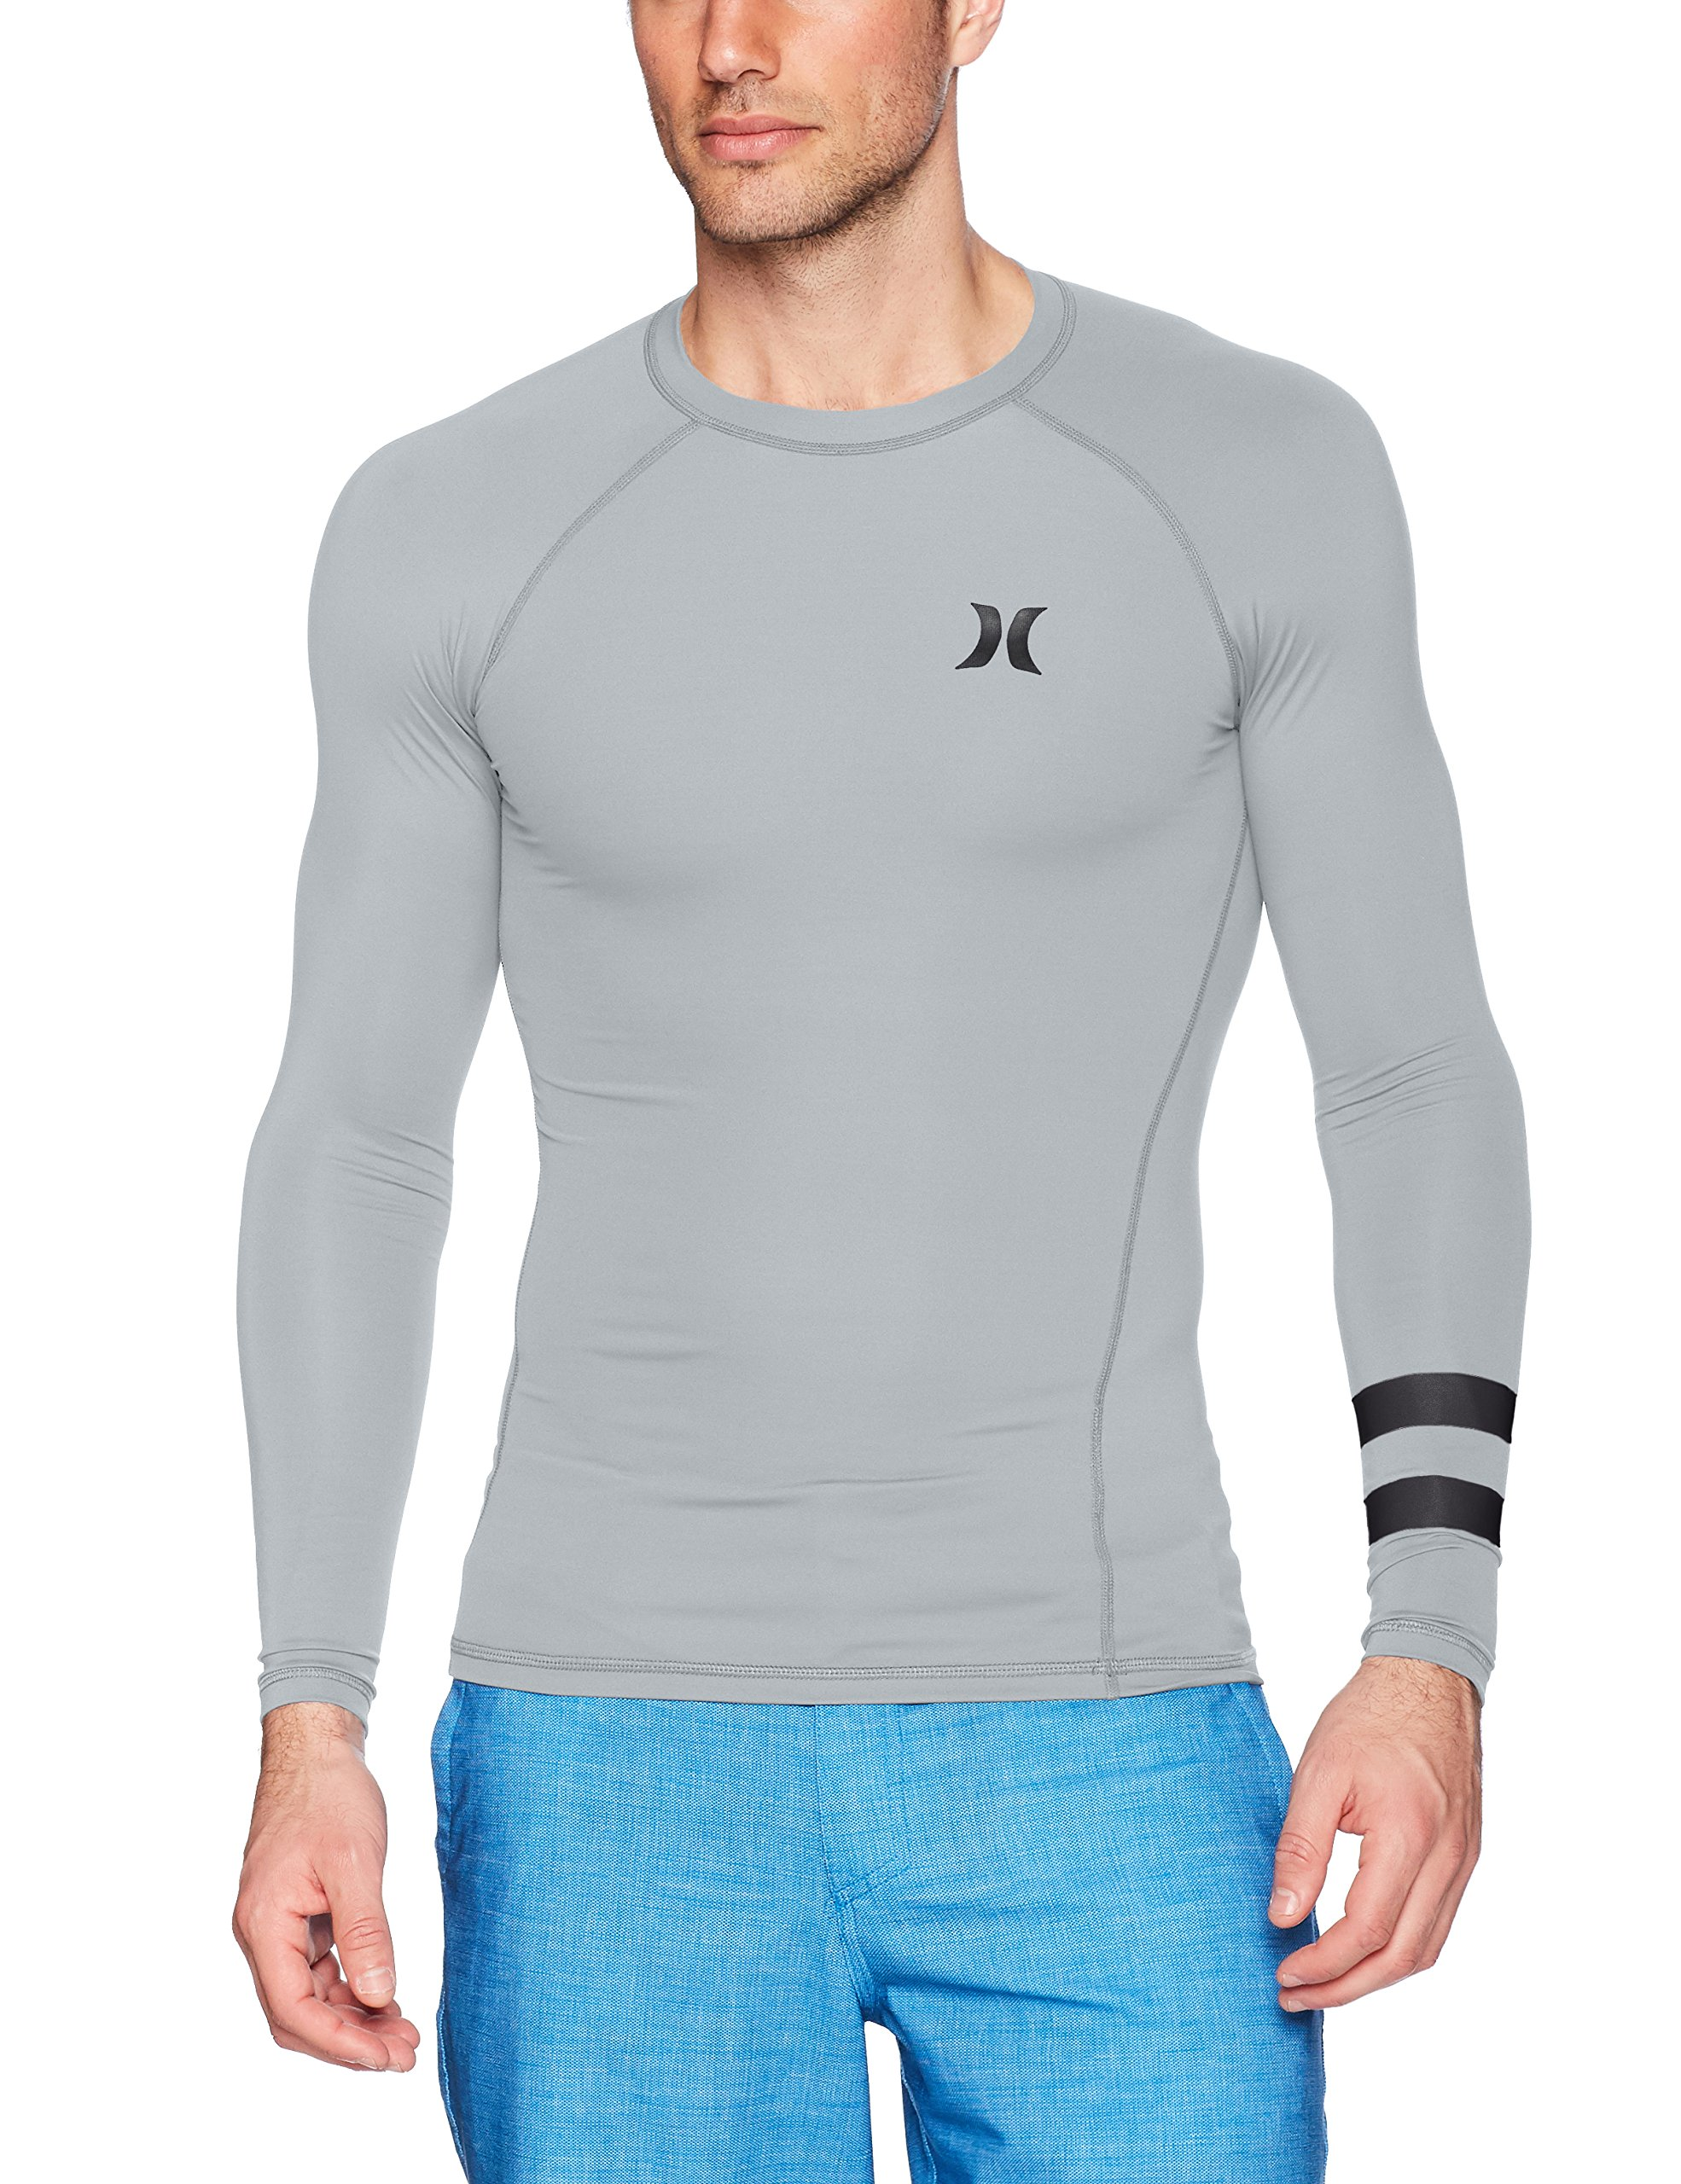 Hurley Men's Long Sleeve Pro Light Quick Dry Sun Protection Rashguard, Wolf Grey, L